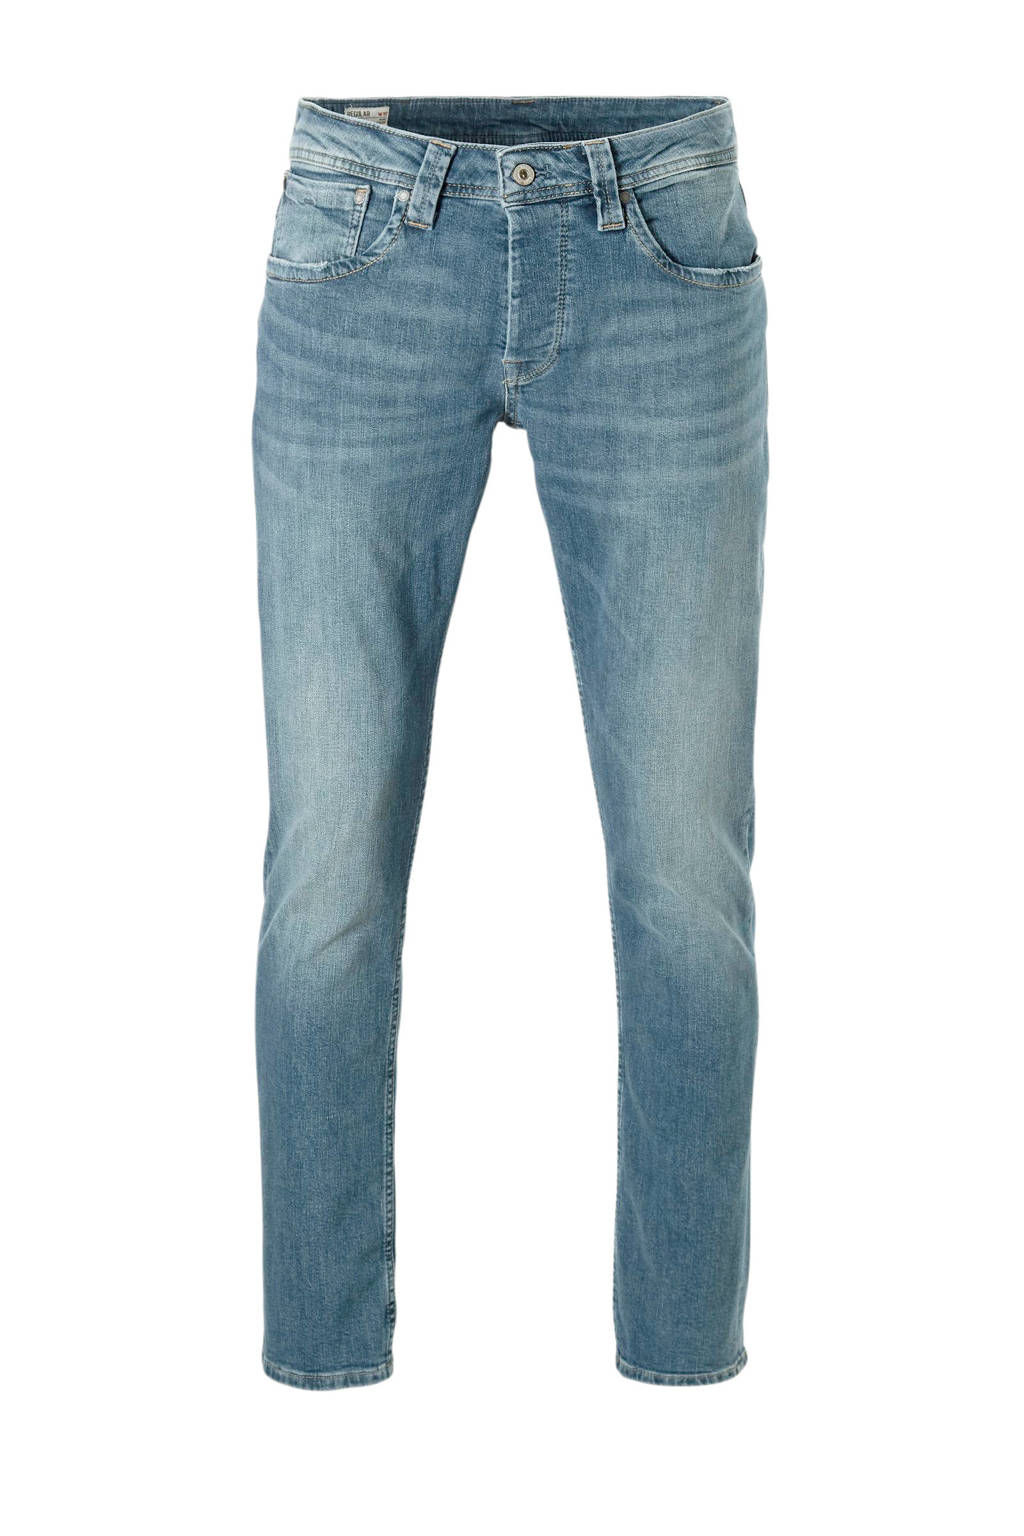 Pepe Jeans regular fit jeans, Blauw